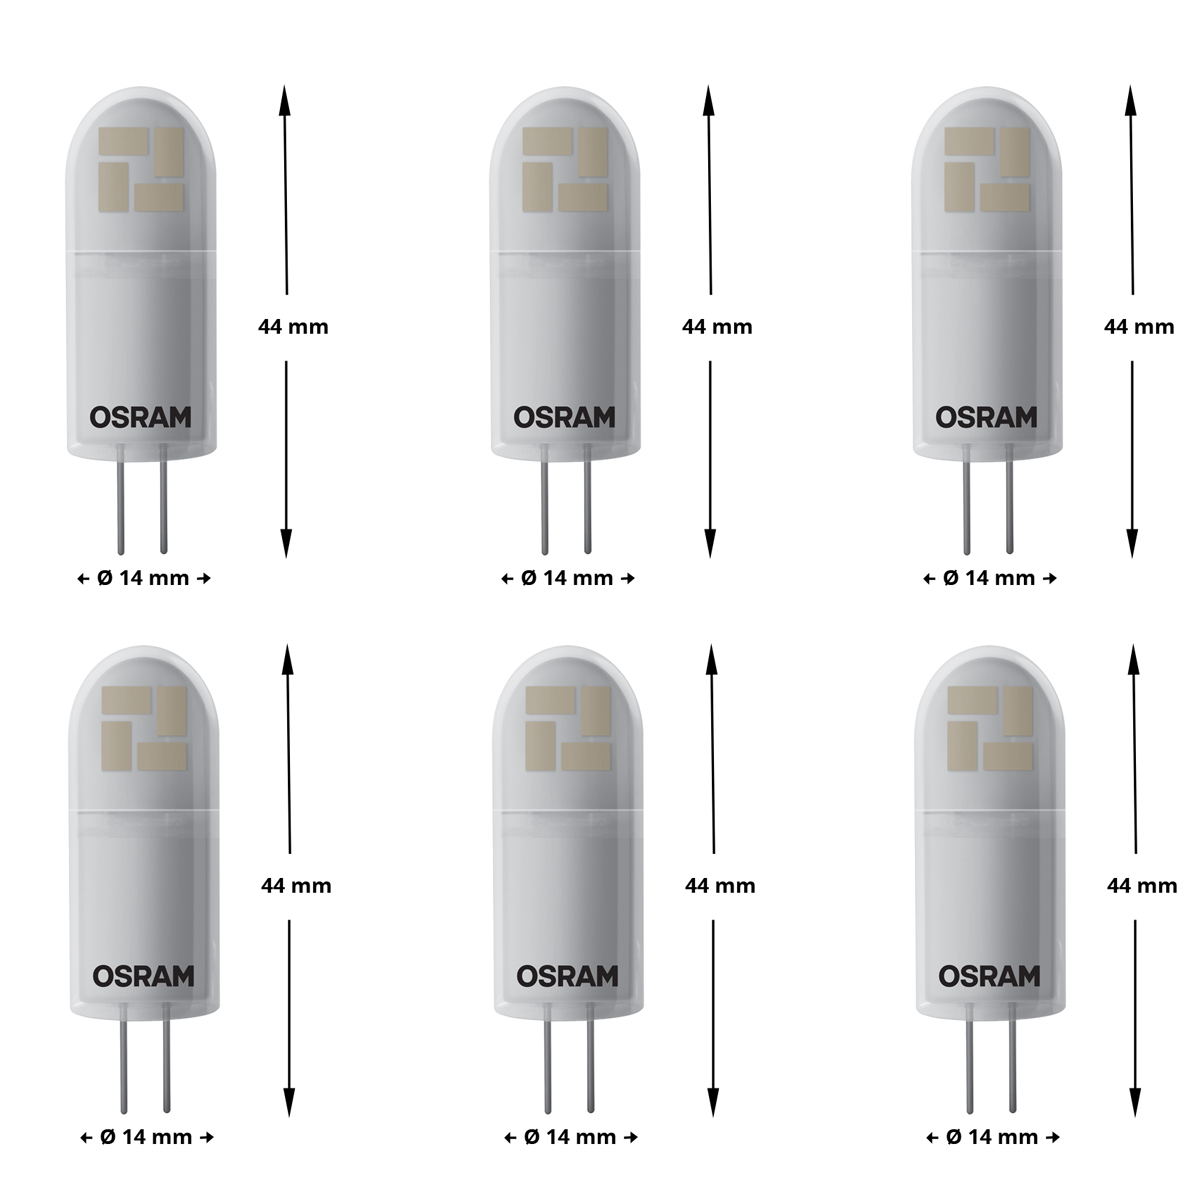 osram led star pin 30 g4 2 4w 28w 300lm warm white 2700k nodim cri 80 ra a 6er ebay. Black Bedroom Furniture Sets. Home Design Ideas